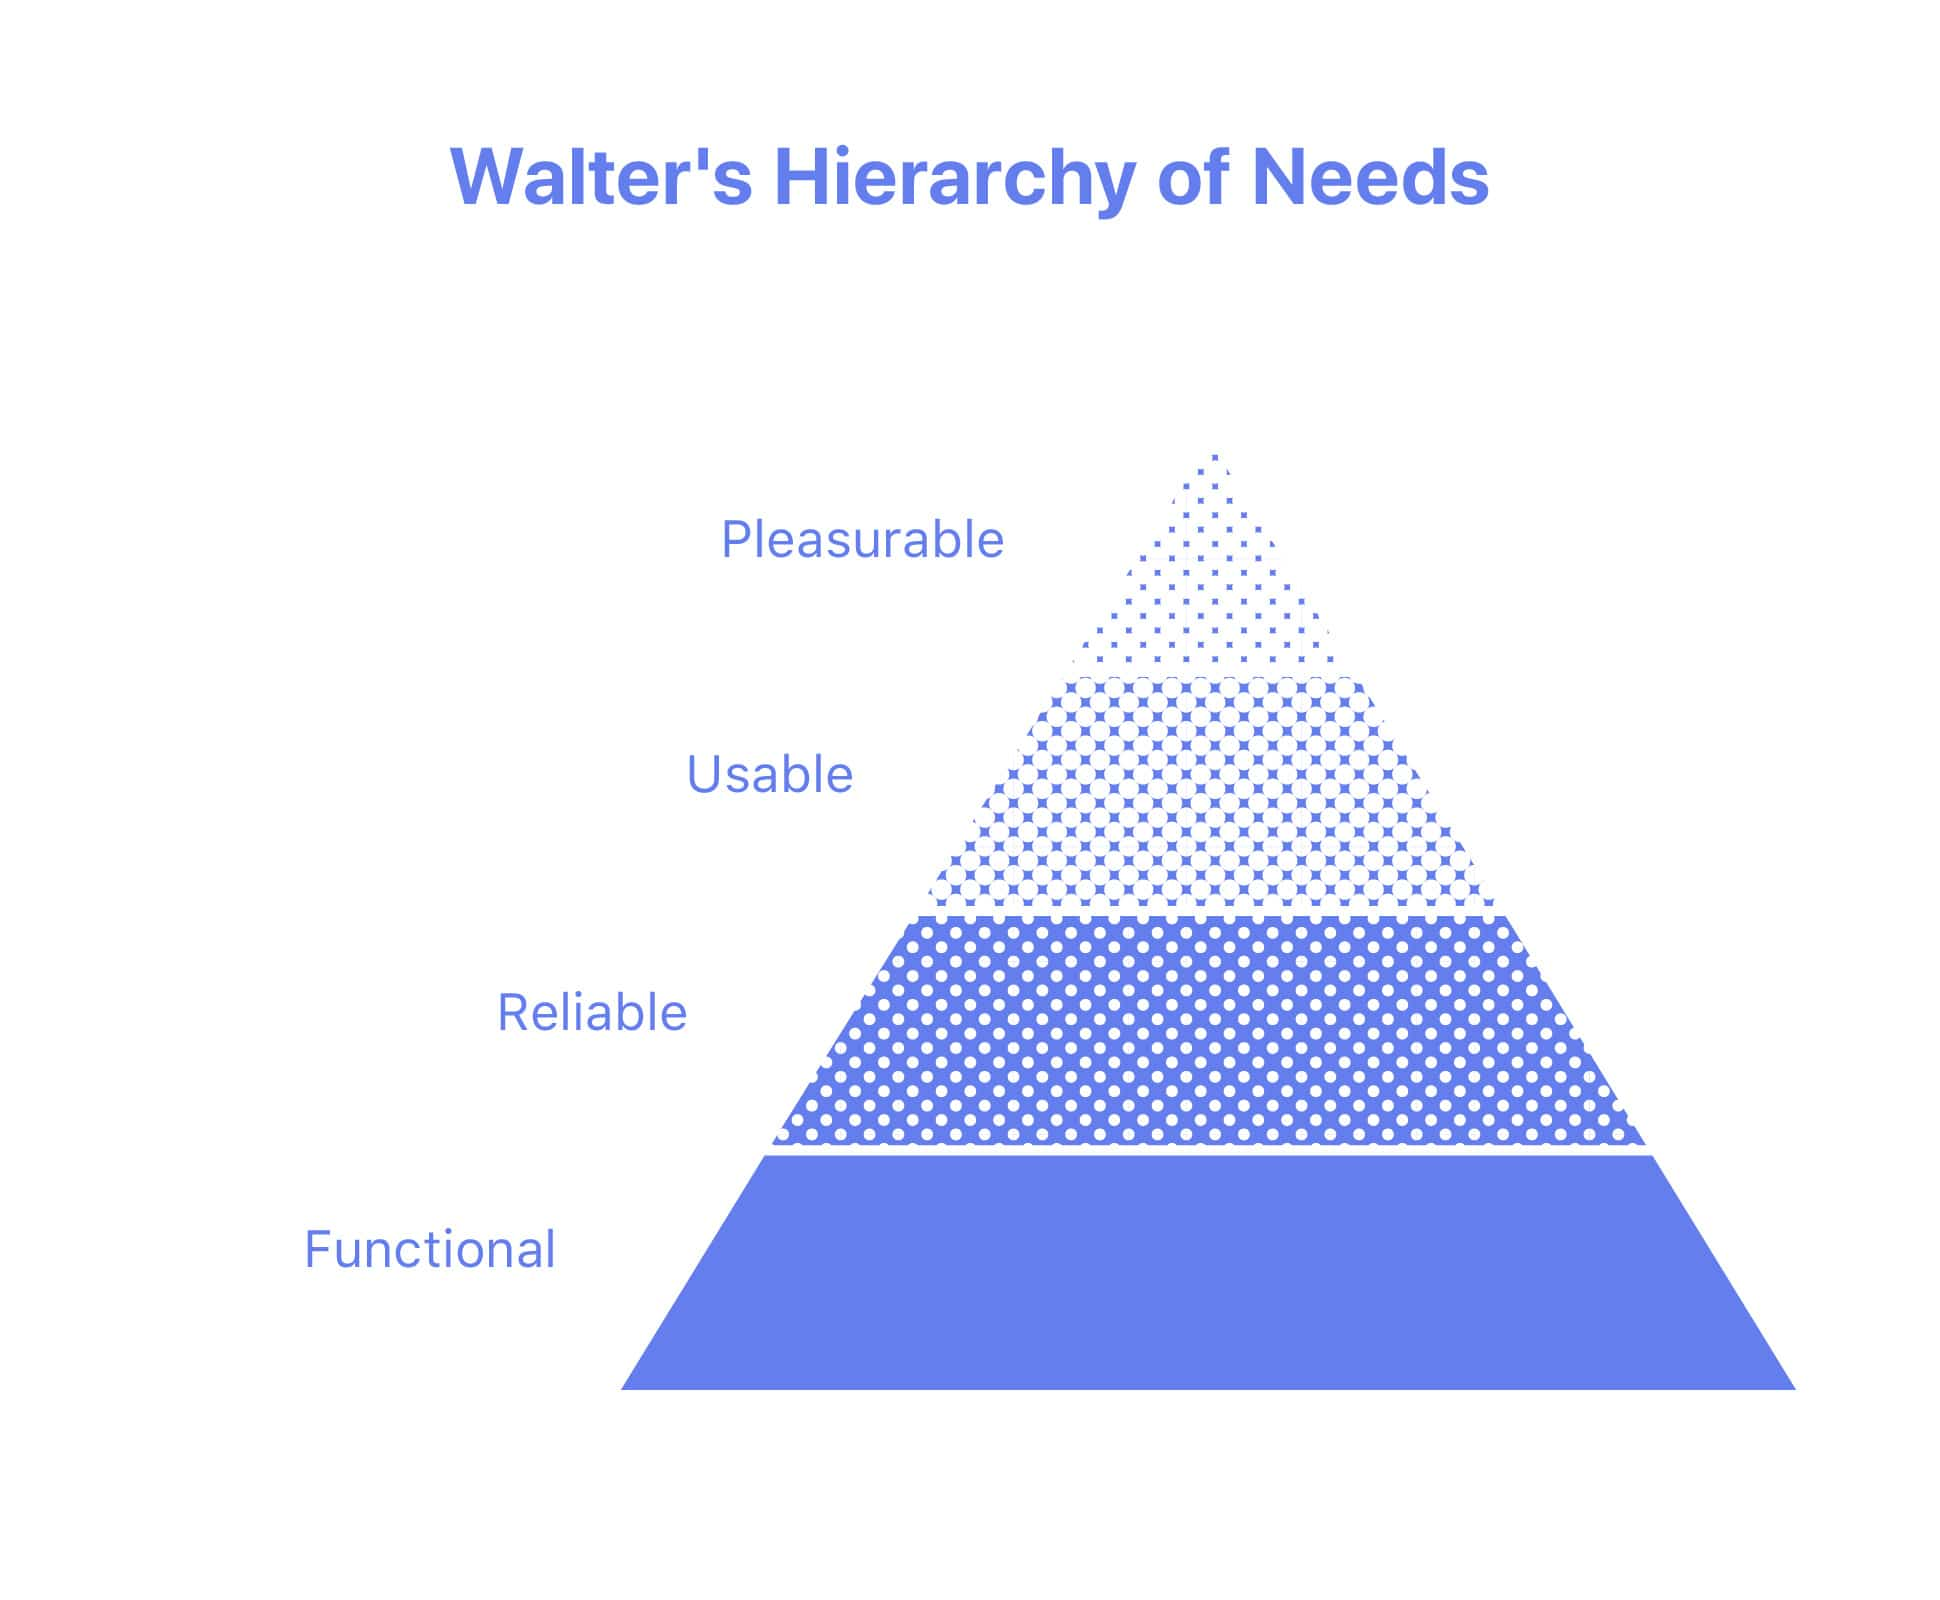 Walter's Hierarchy of Needs